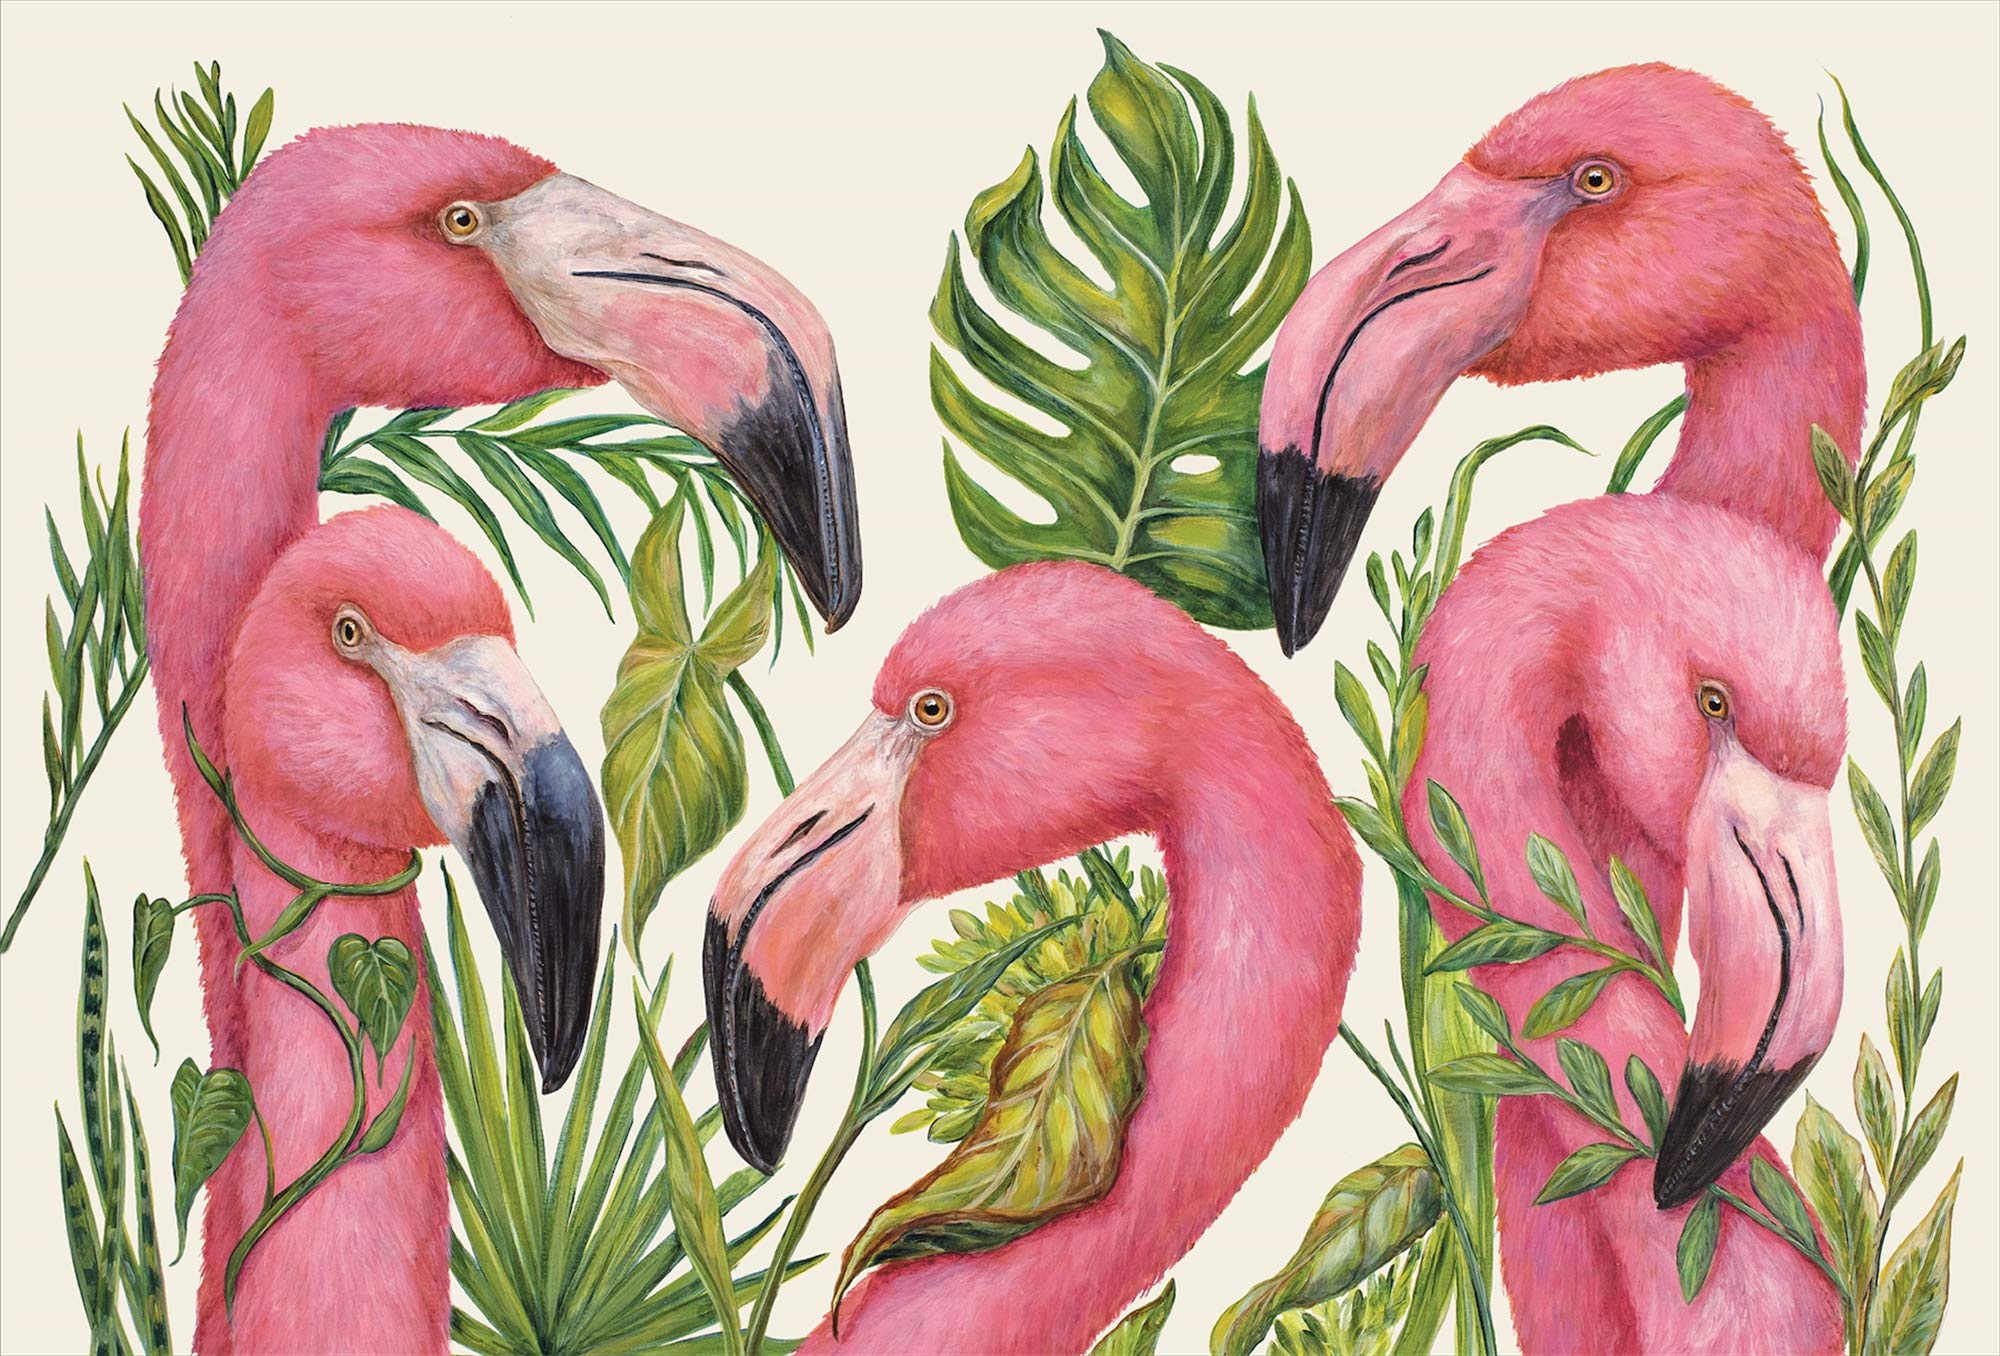 Hester & Cook Tropical Flamingos Paper Placemat, 24 Sheets